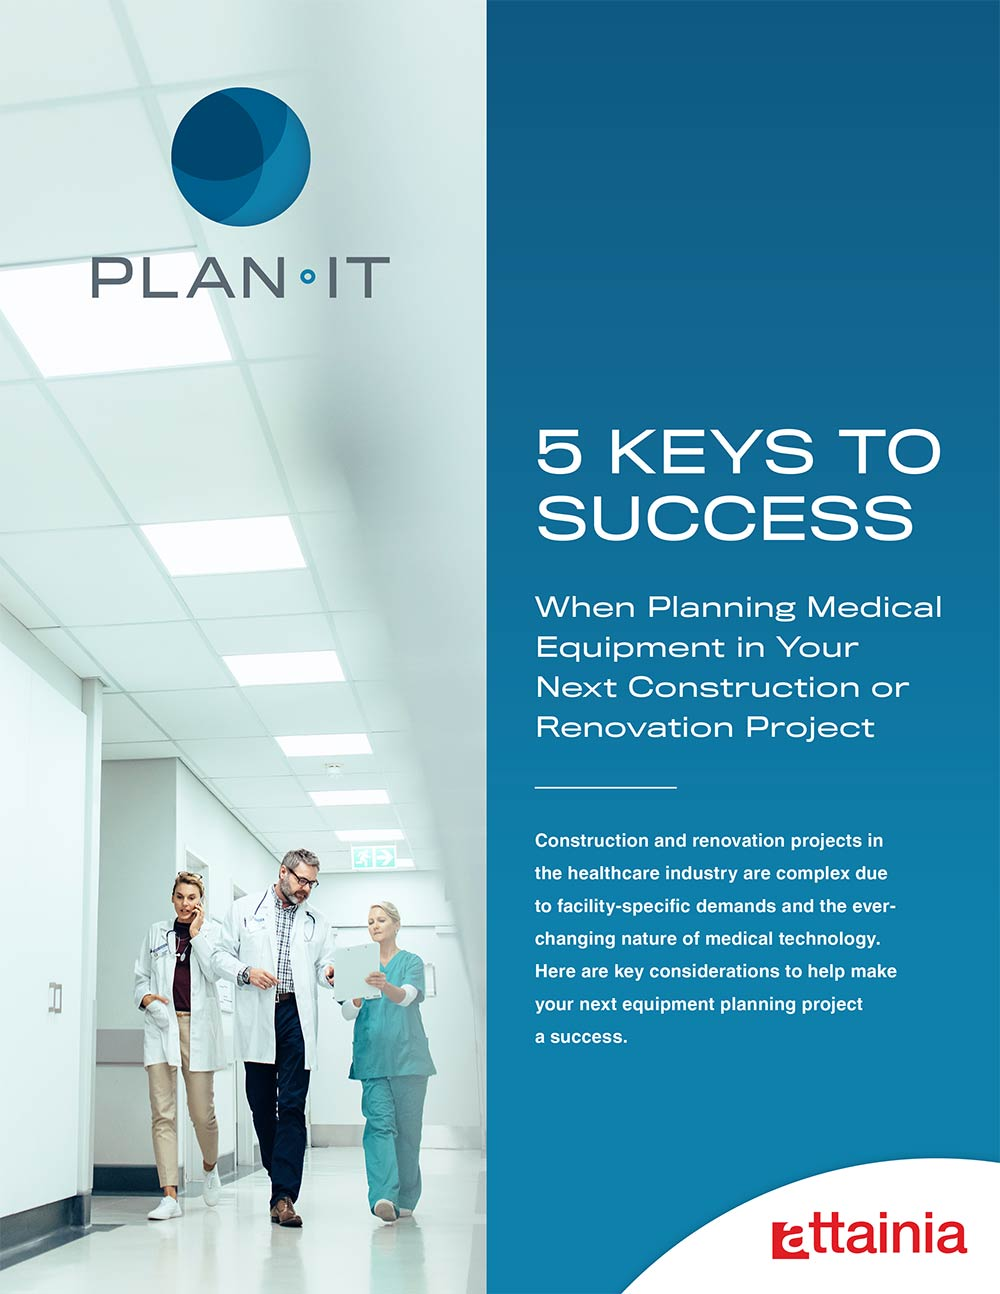 5 Keys to Success When Planning Medical Equipment In Your Next Construction or Renovation Project